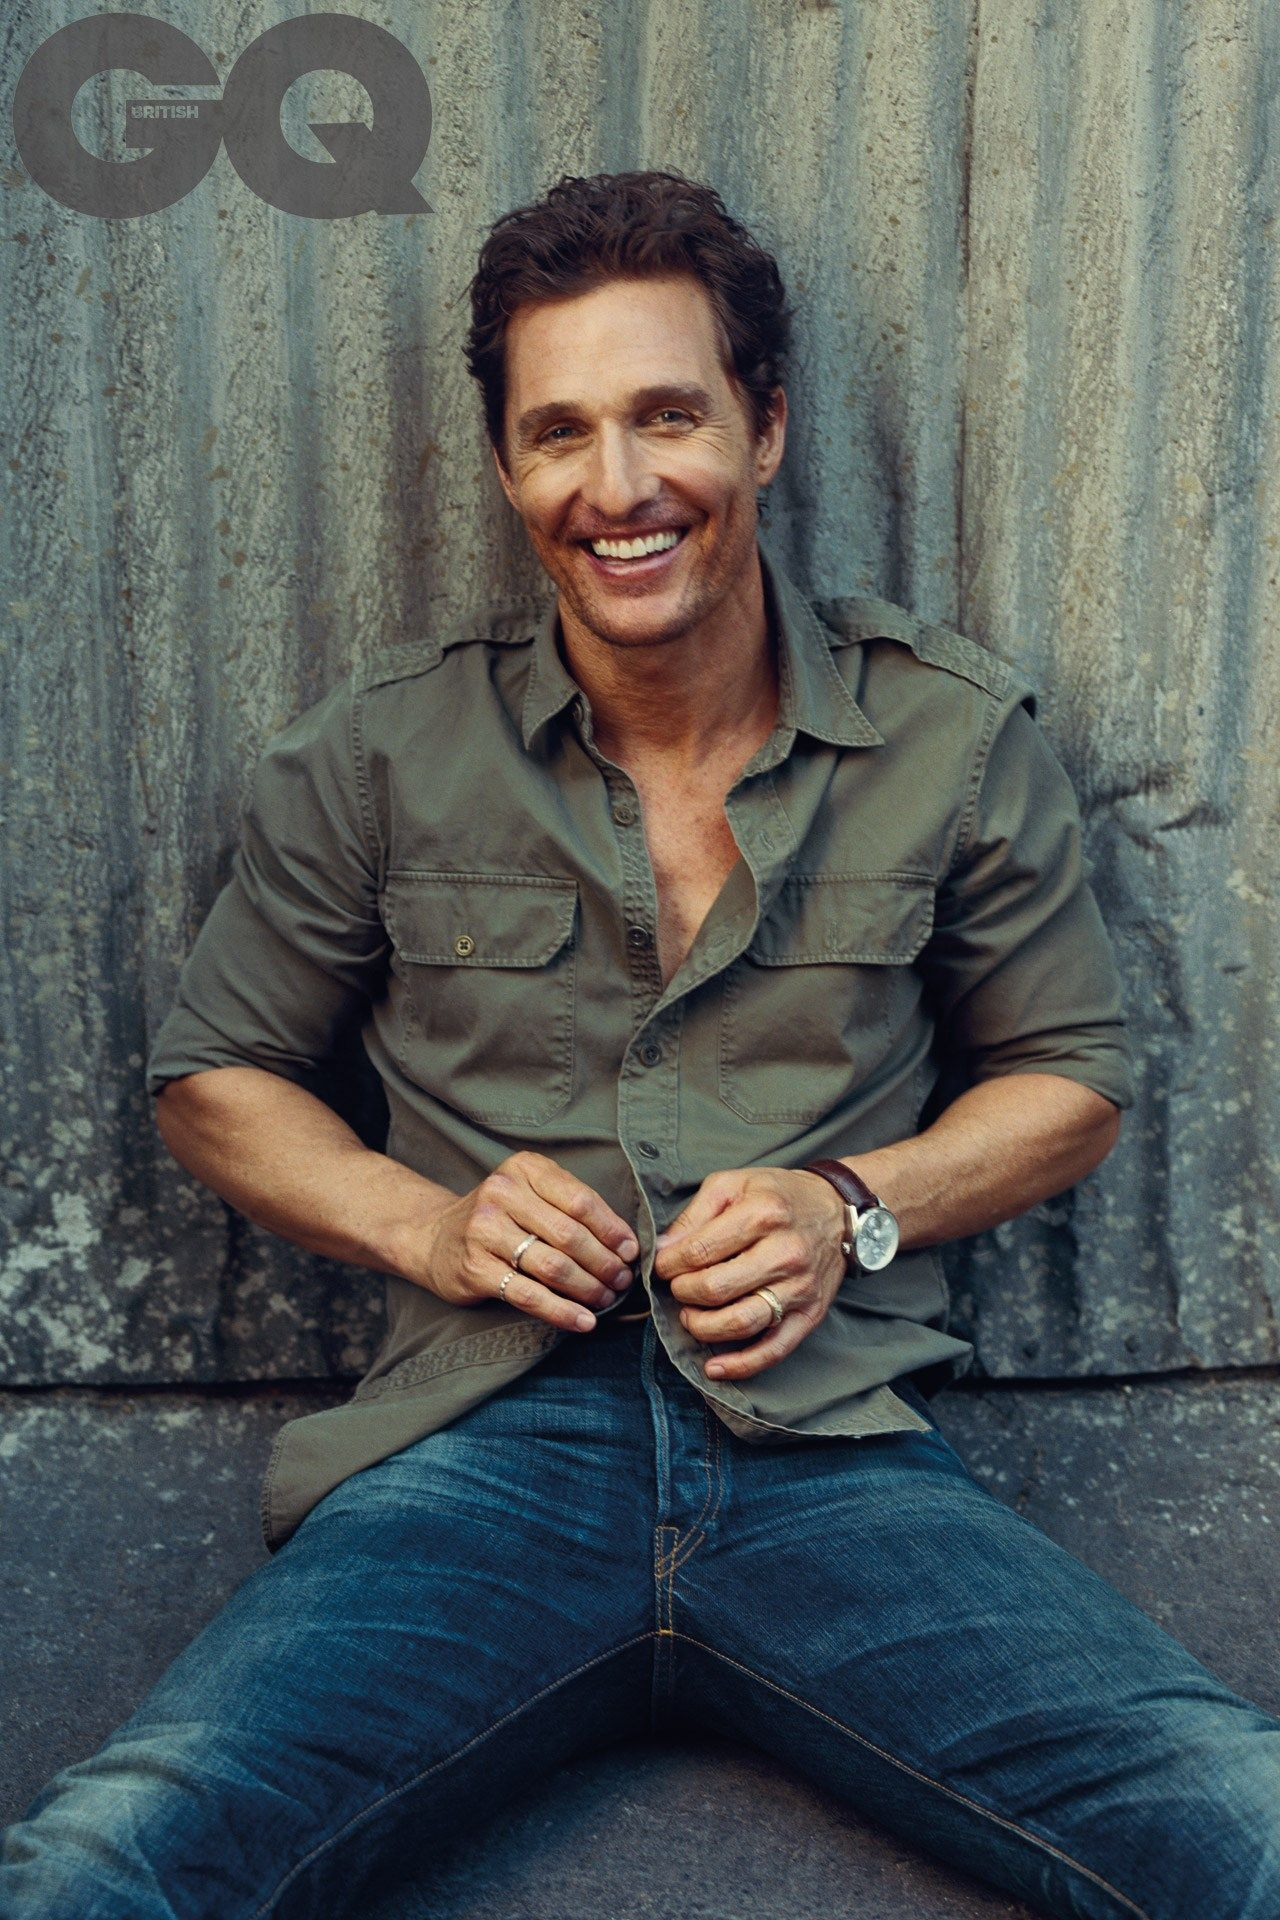 """Alright, alright, alright! Matthew McConaughey covers GQ ..."